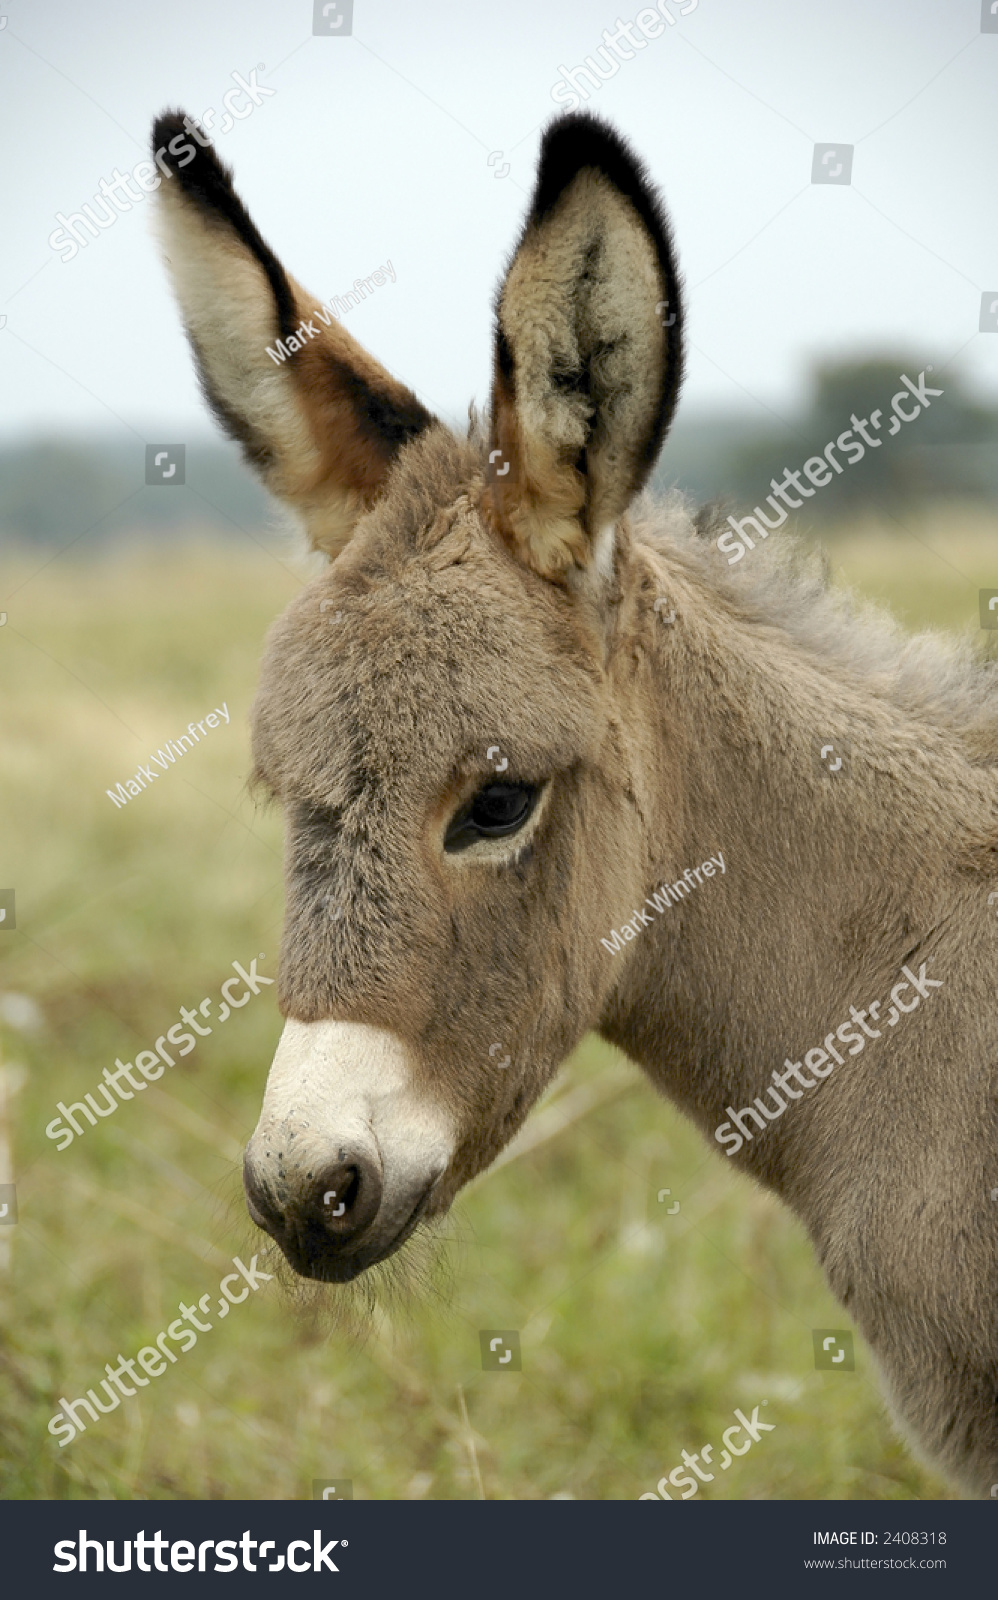 stock-photo-baby-donkey-2408318.jpg